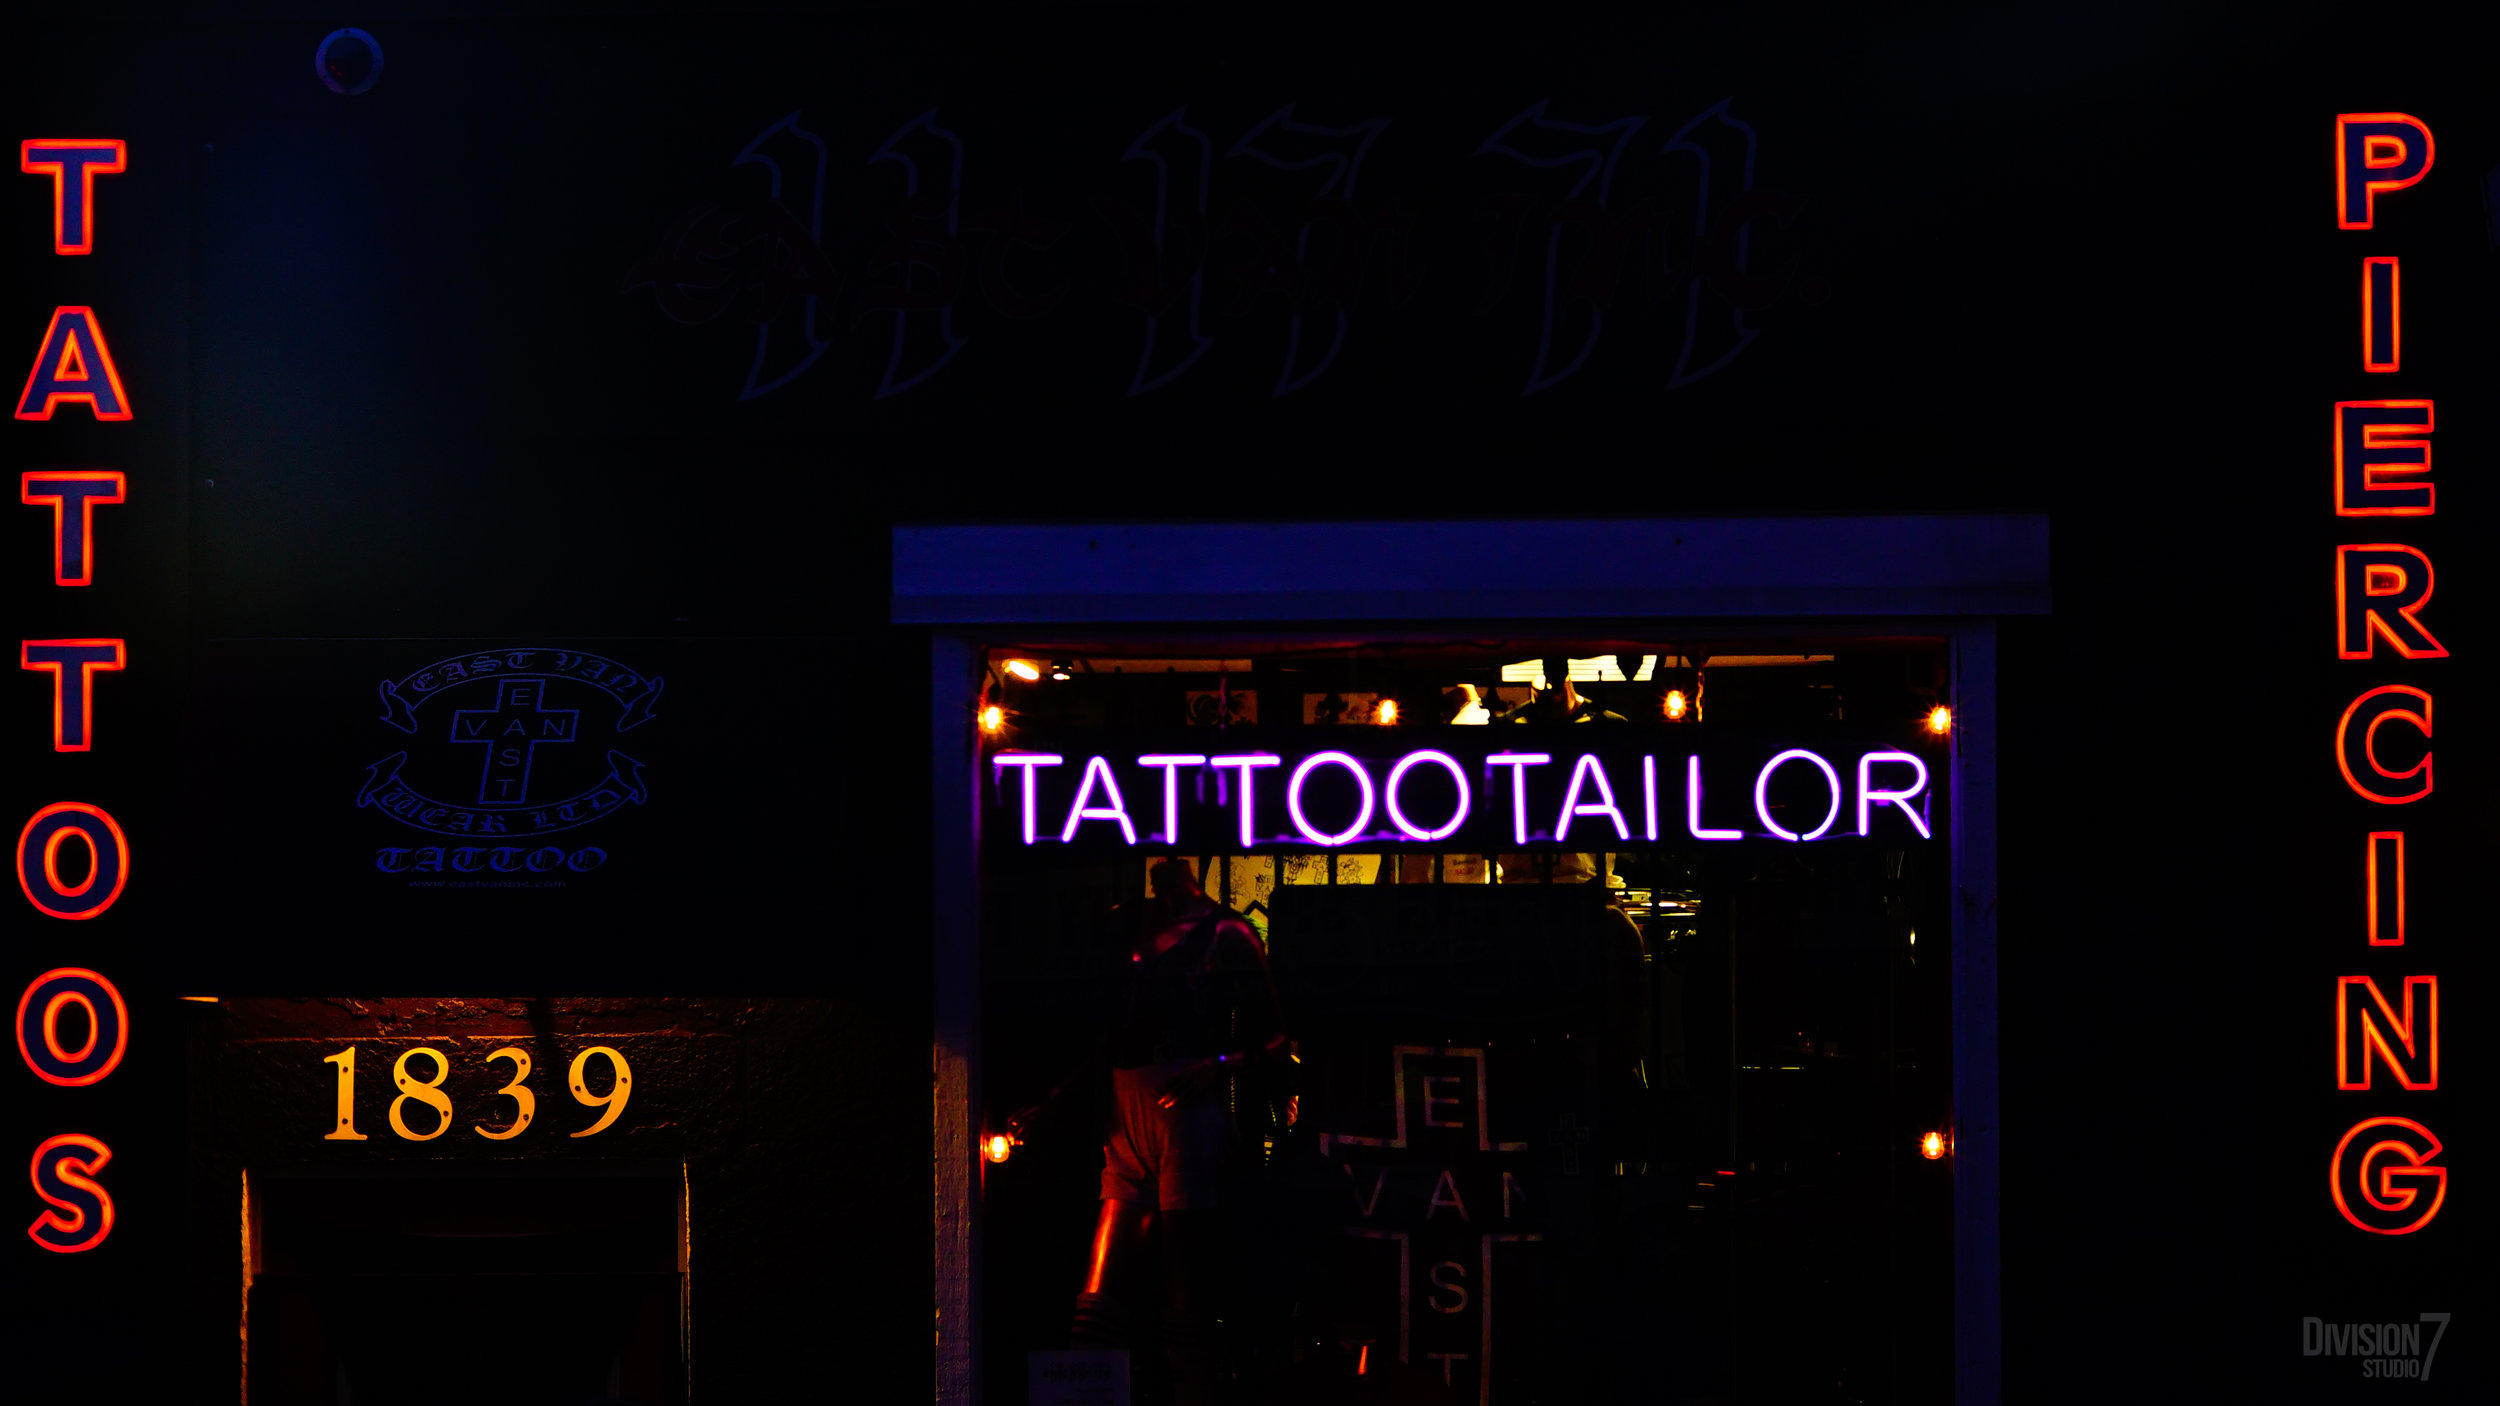 I suppose it's a good thing this tattoo parlour (located right next to a pub) was closed on Saint Patrick's Day.